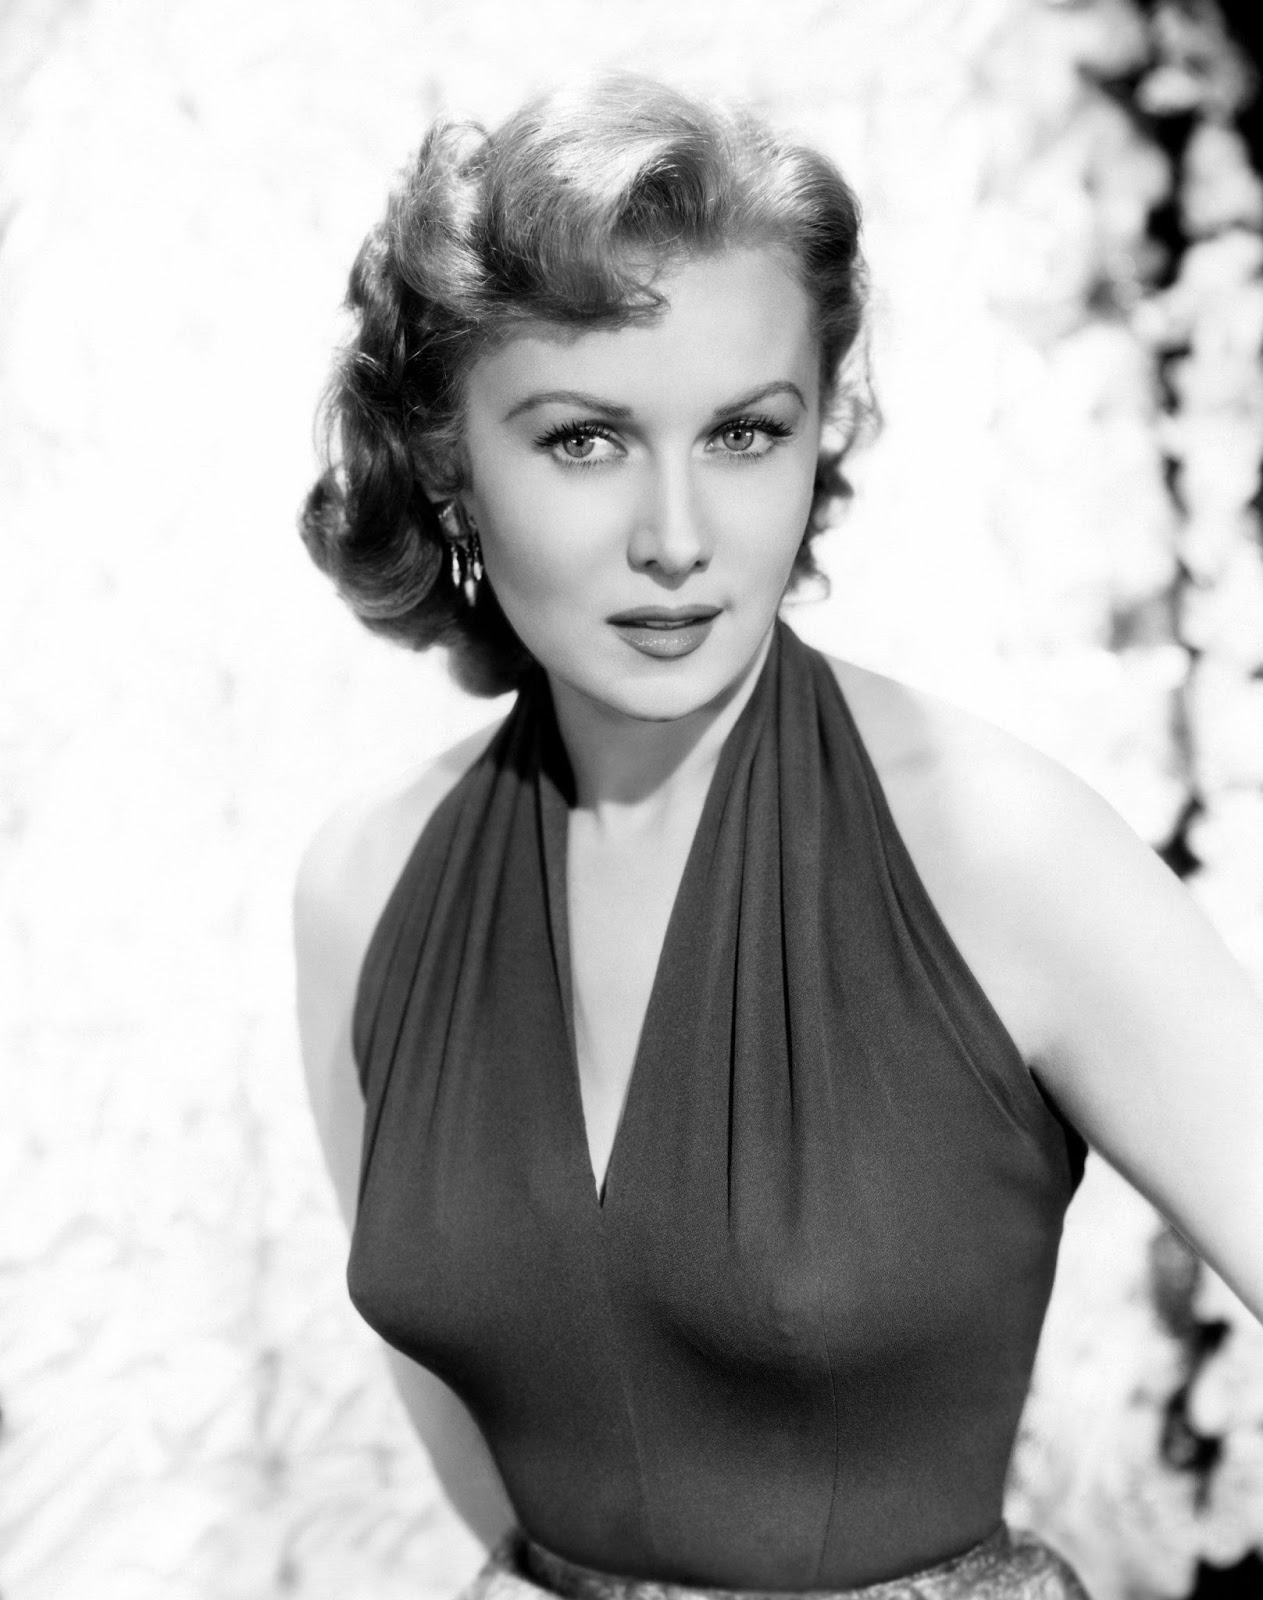 Rhonda Fleming nudes (59 pictures) Video, YouTube, underwear